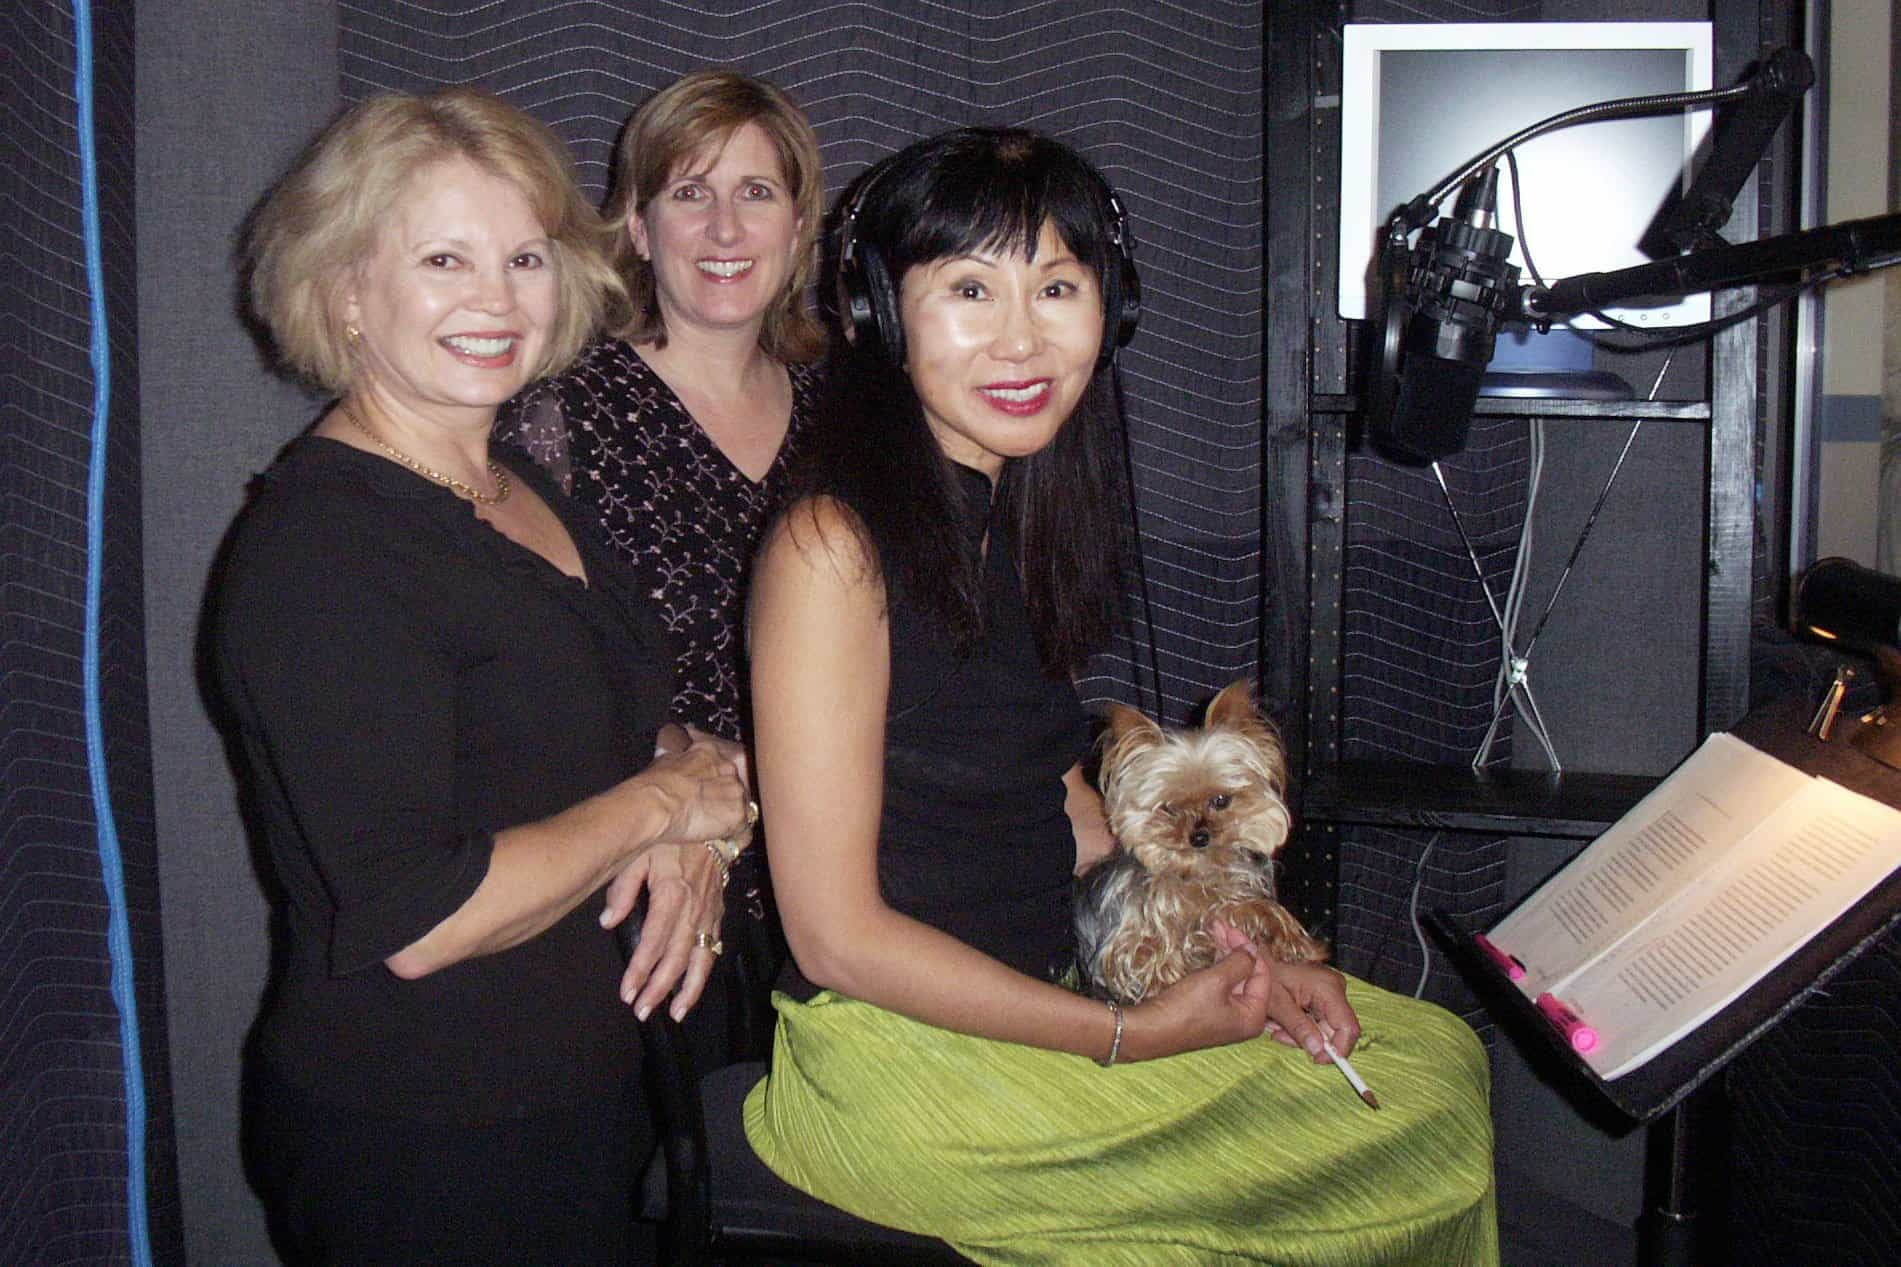 Kathy, Elaine and Amy Tan